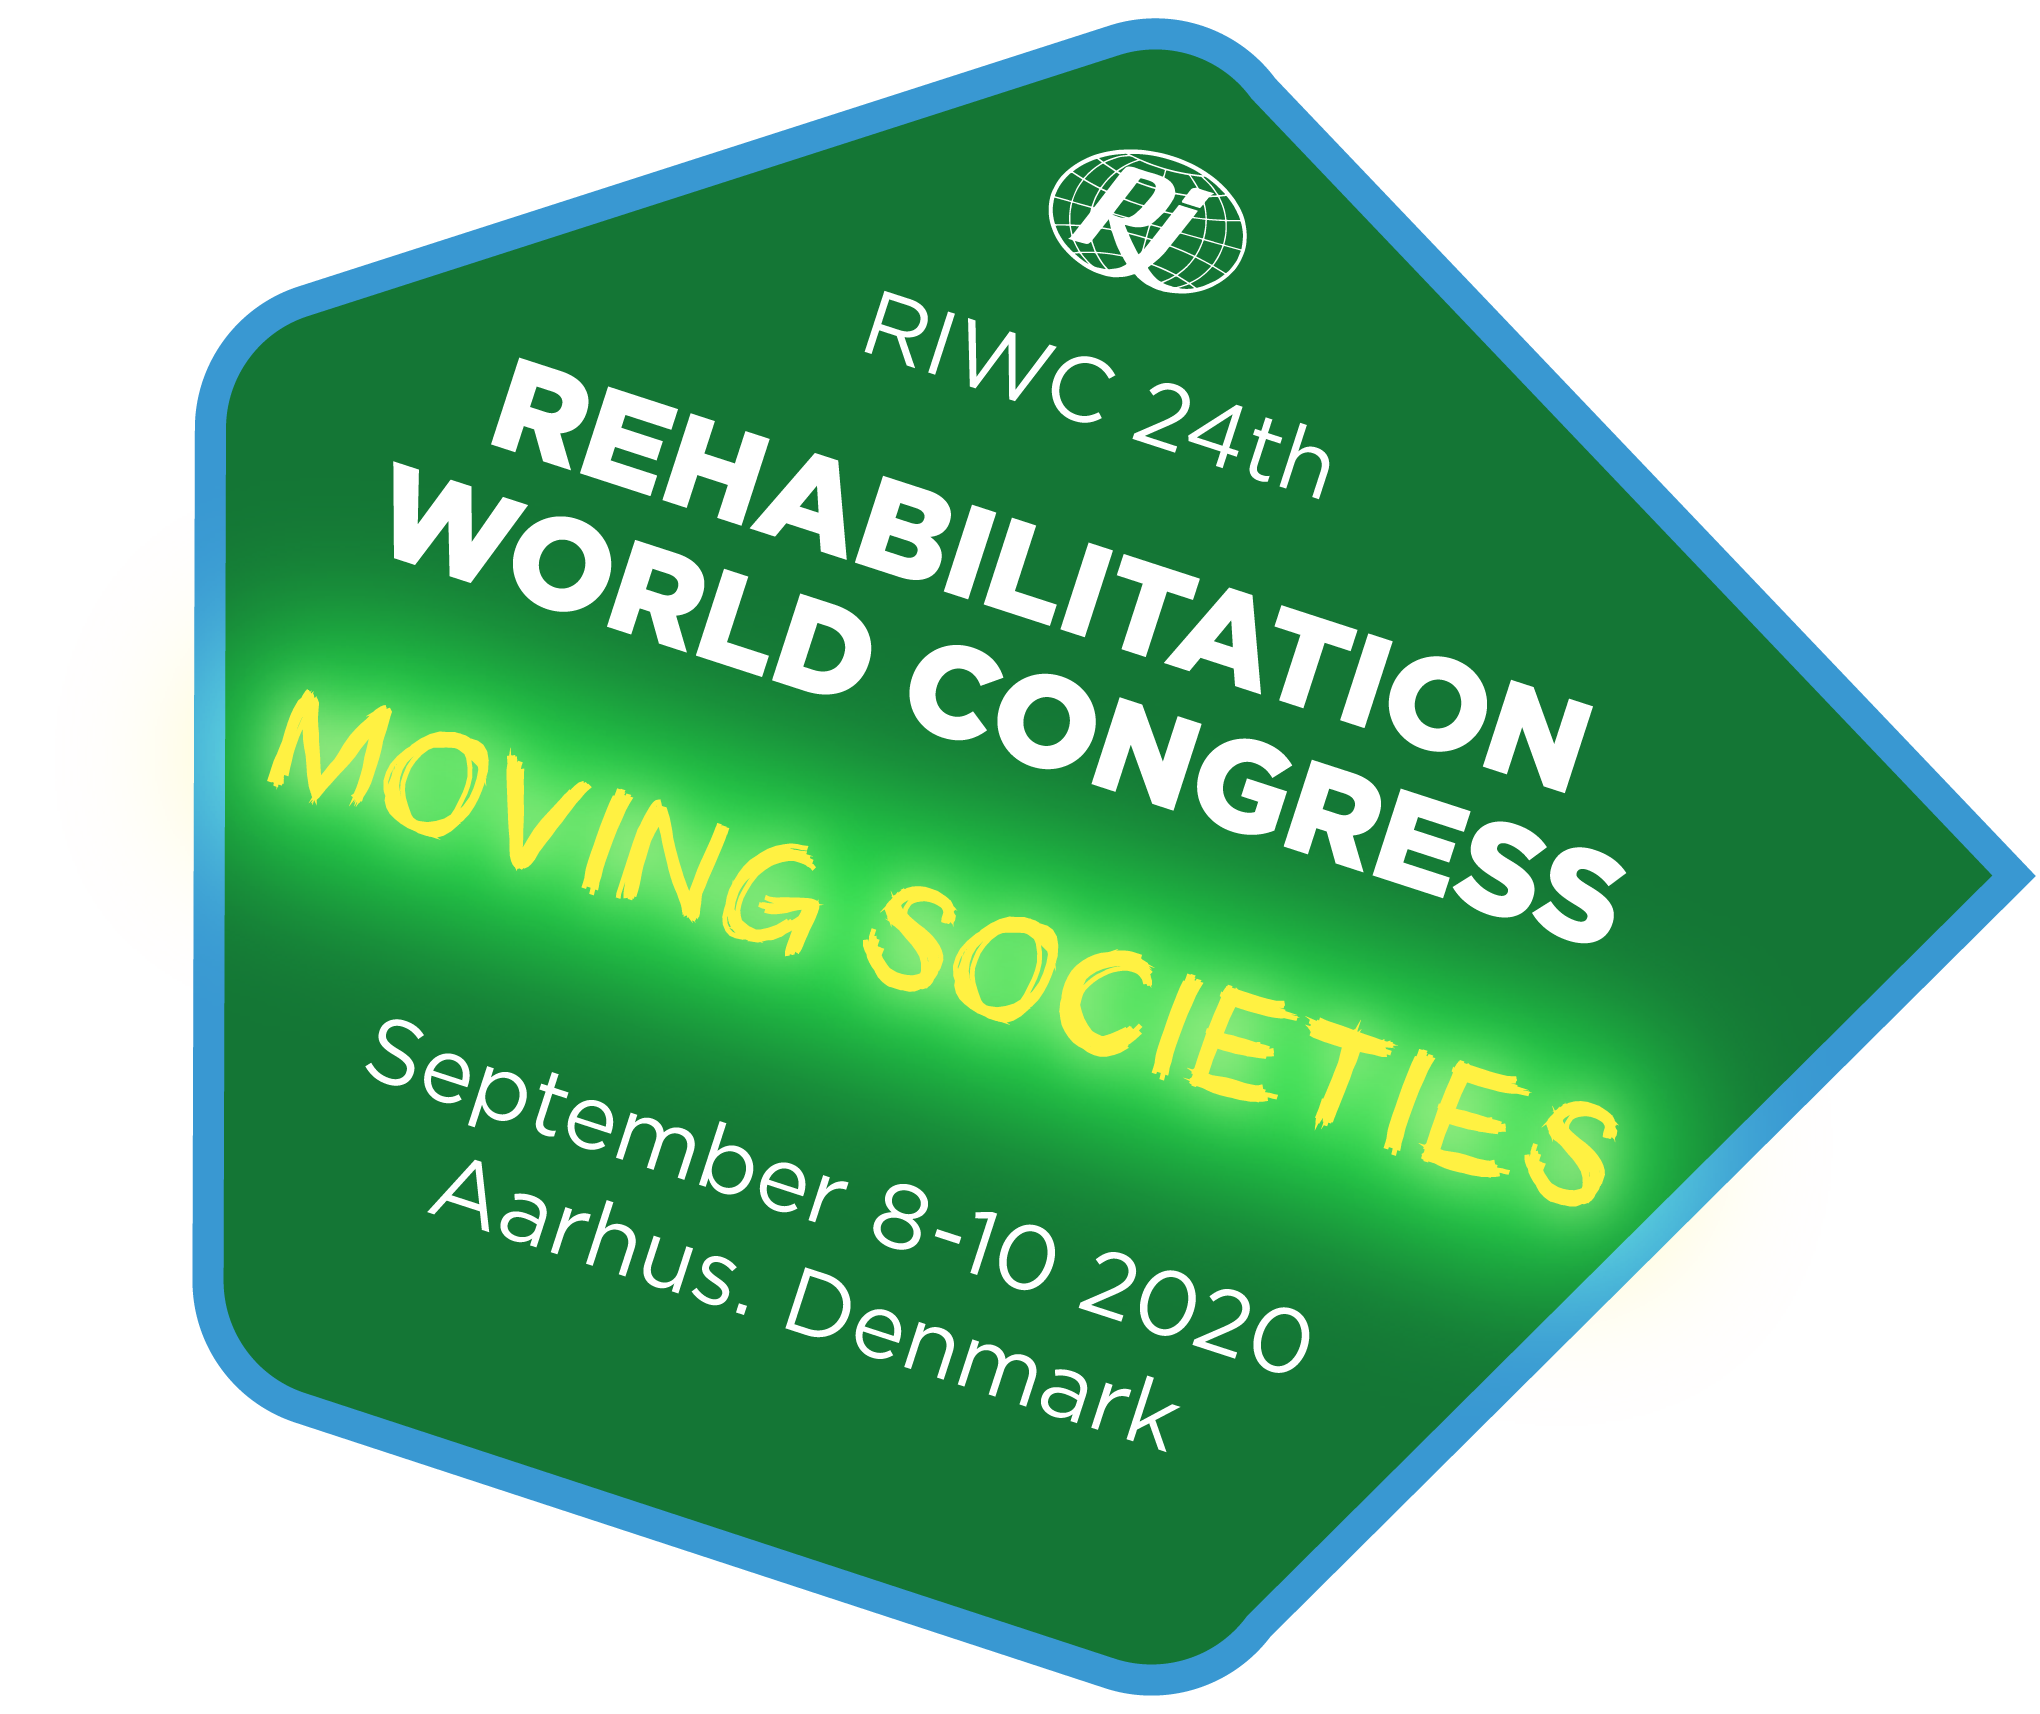 Read more about the RIWorldCongress here